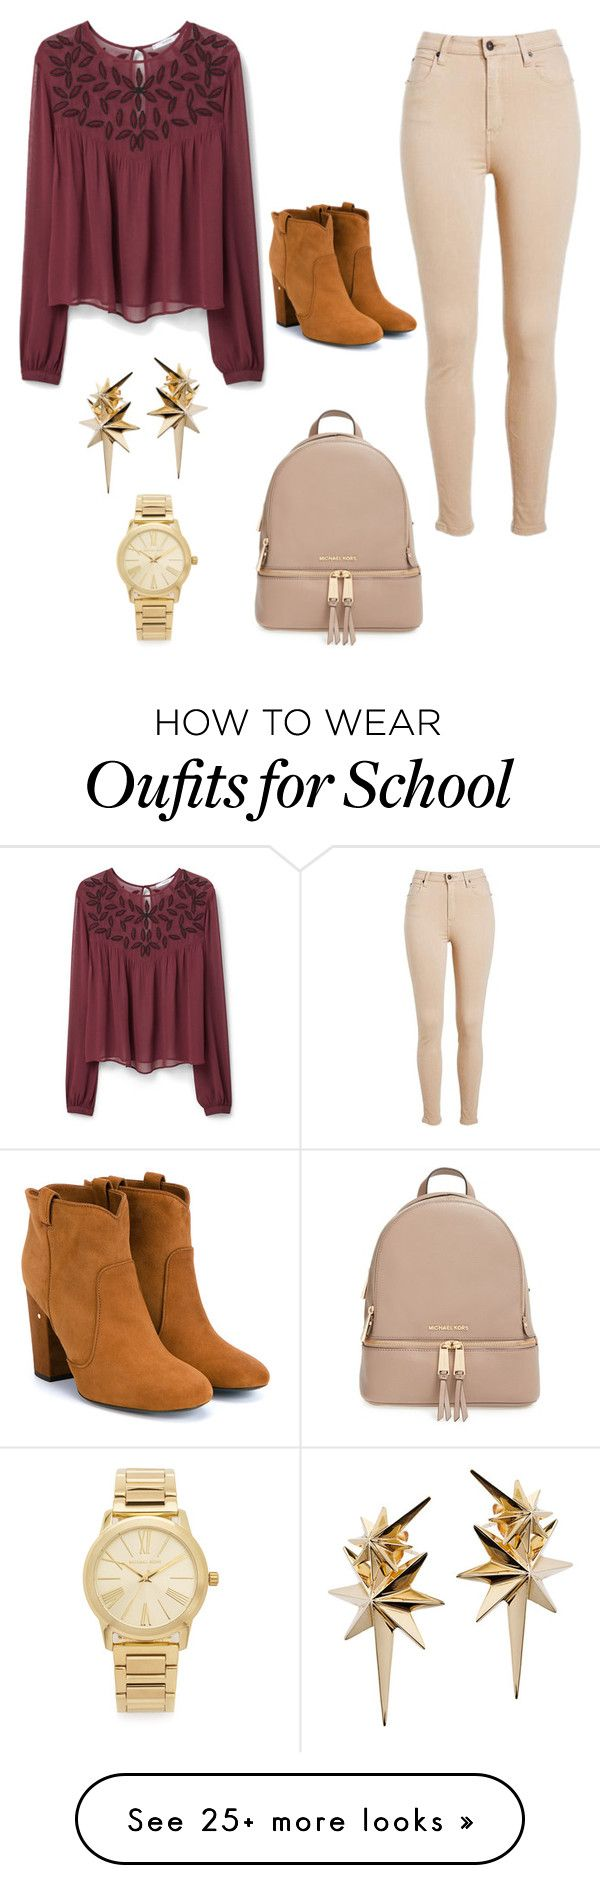 """Casual School Outfit"" by maytte-carrera on Polyvore featuring MANGO, MICHAEL Michael Kors, Laurence Dacade, Ludevine, Michael Kors, women's clothing, women, female, woman and misses"